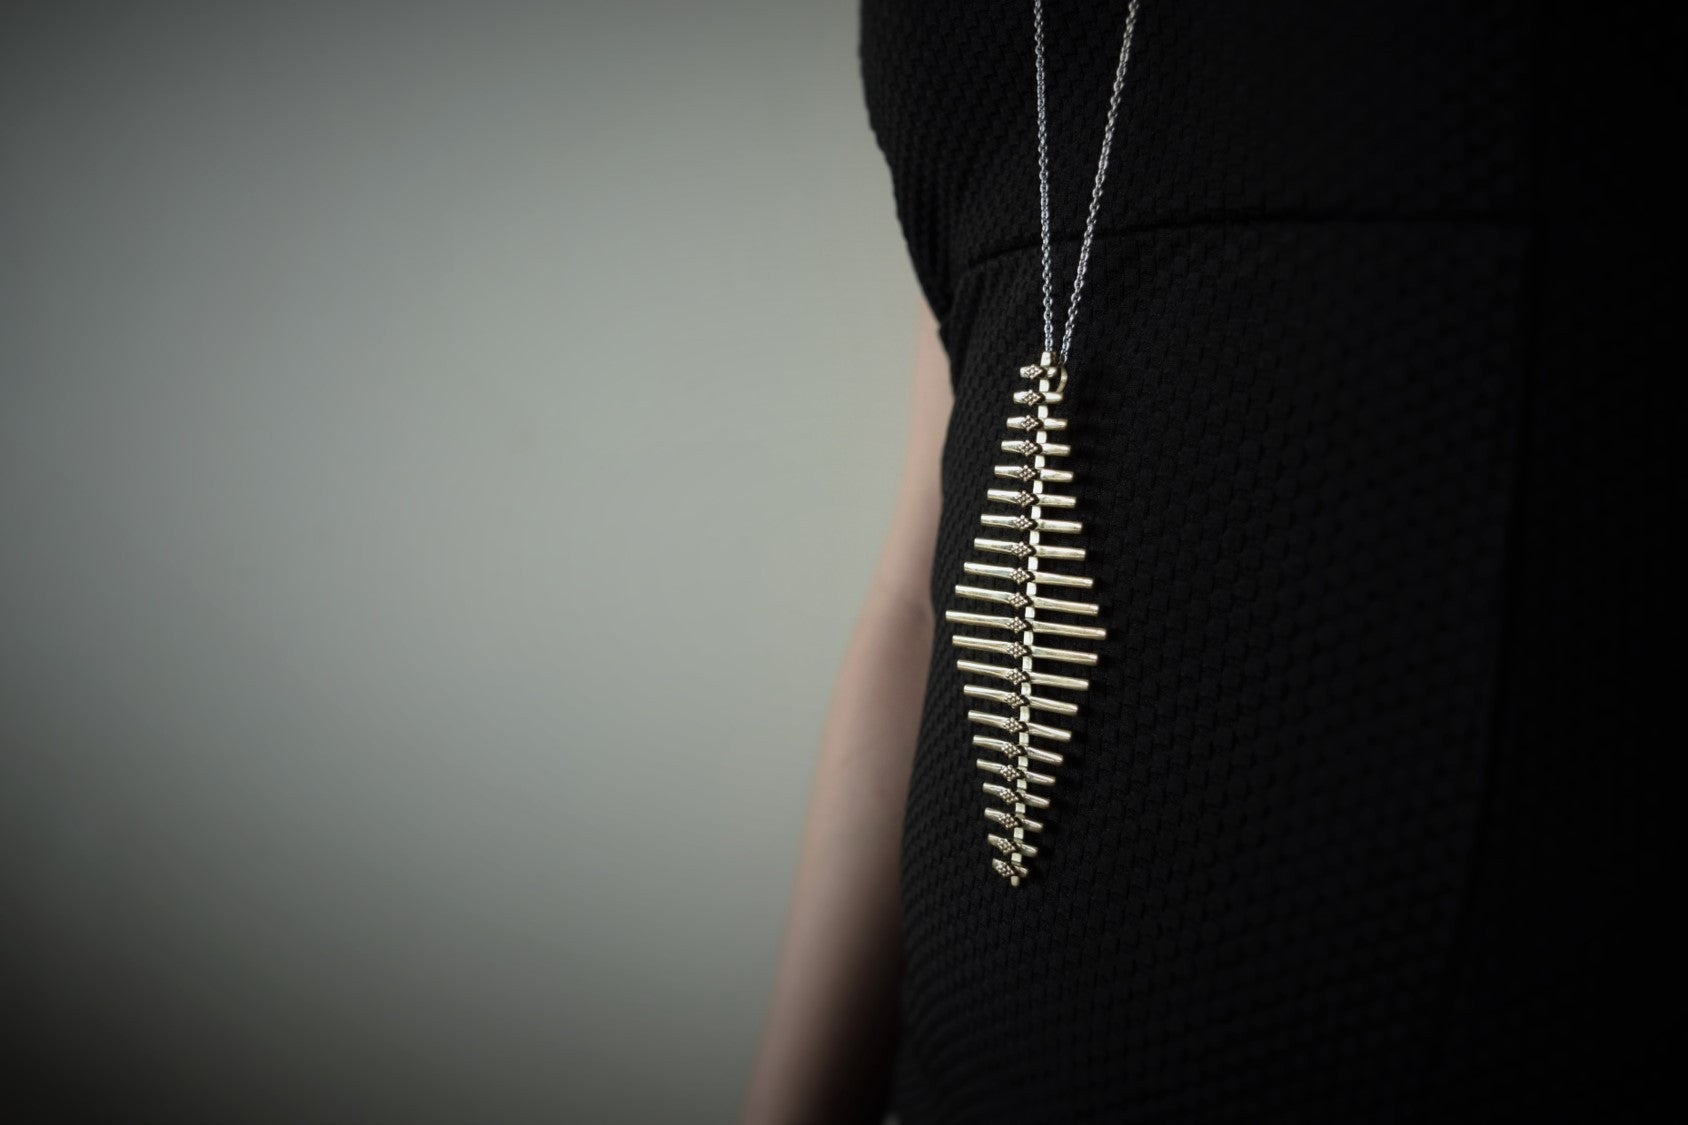 'Meyttu' Pendant Chain (Adjustable)